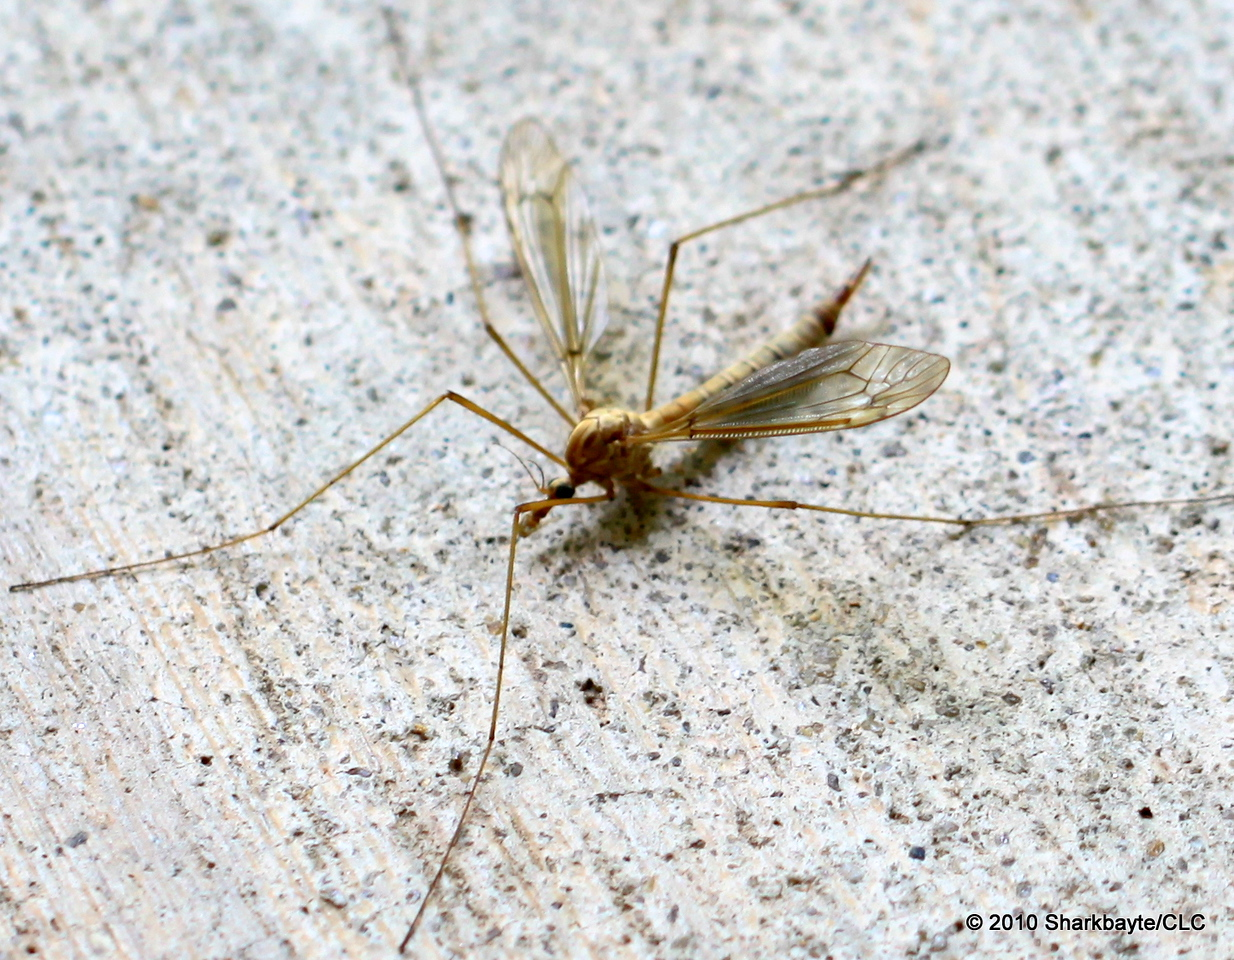 Crane Fly. I can see where a tripod would have been a wonderful thing to use on this shot.